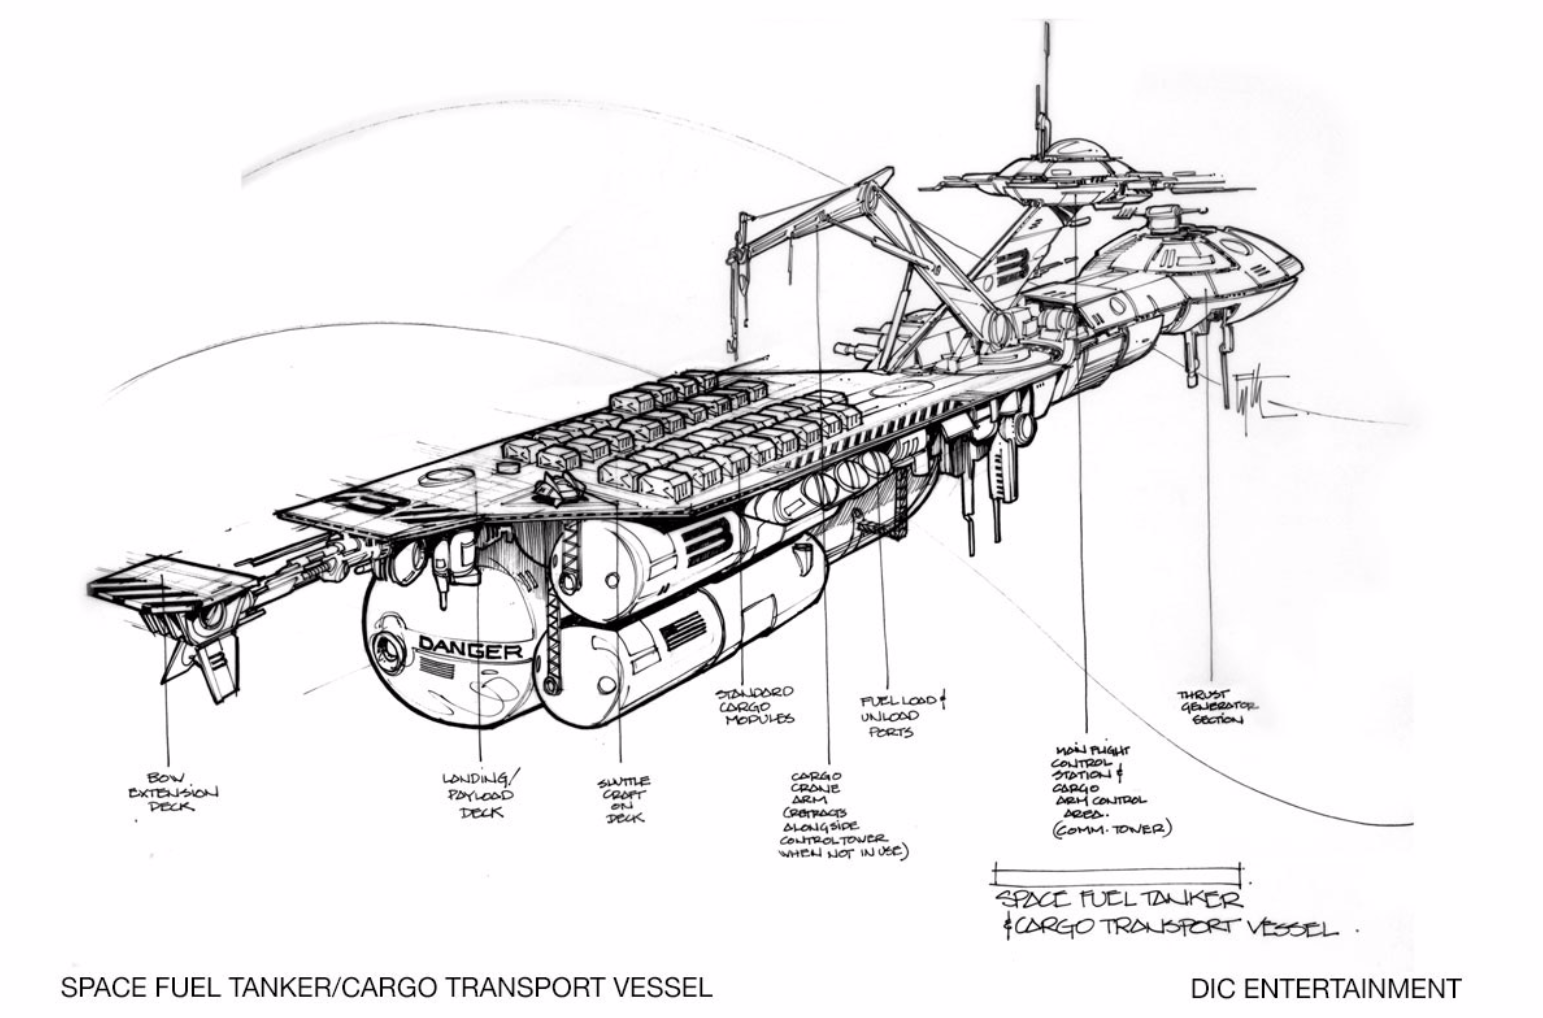 Edward Eyth Design sketching Space fuel Tanker Cargo Transport Vessel